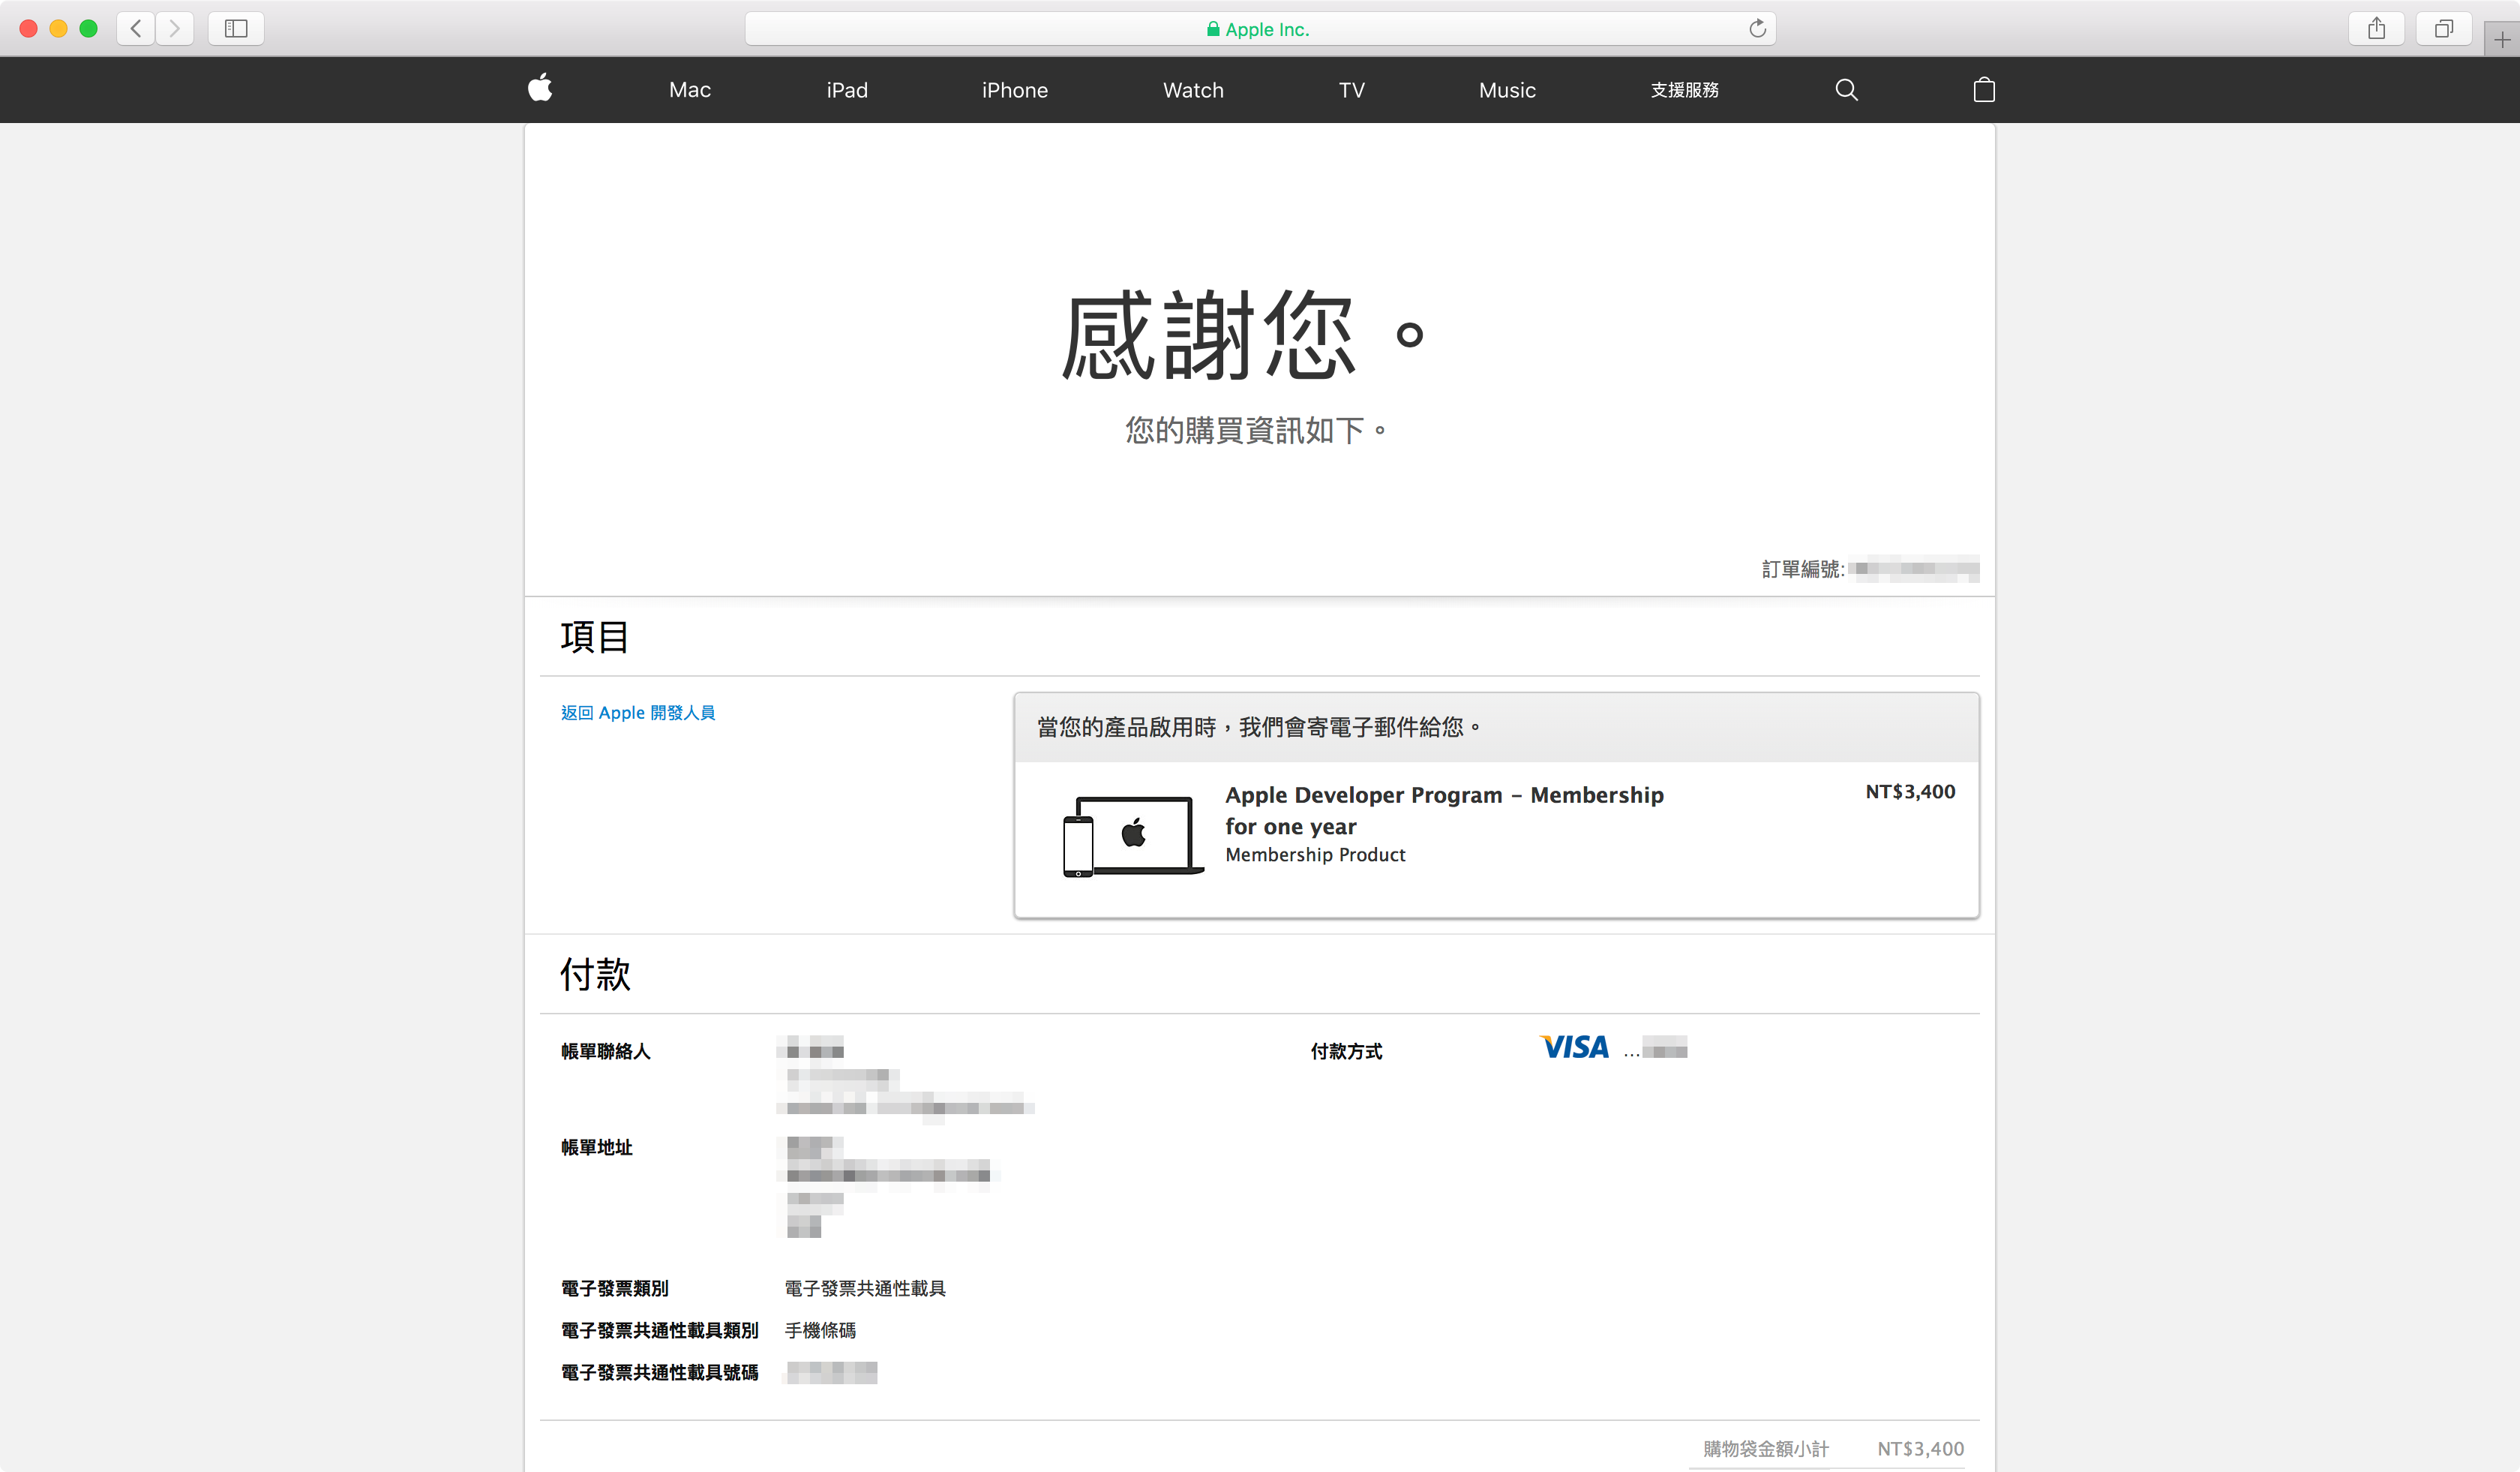 Apple online store - Thank you